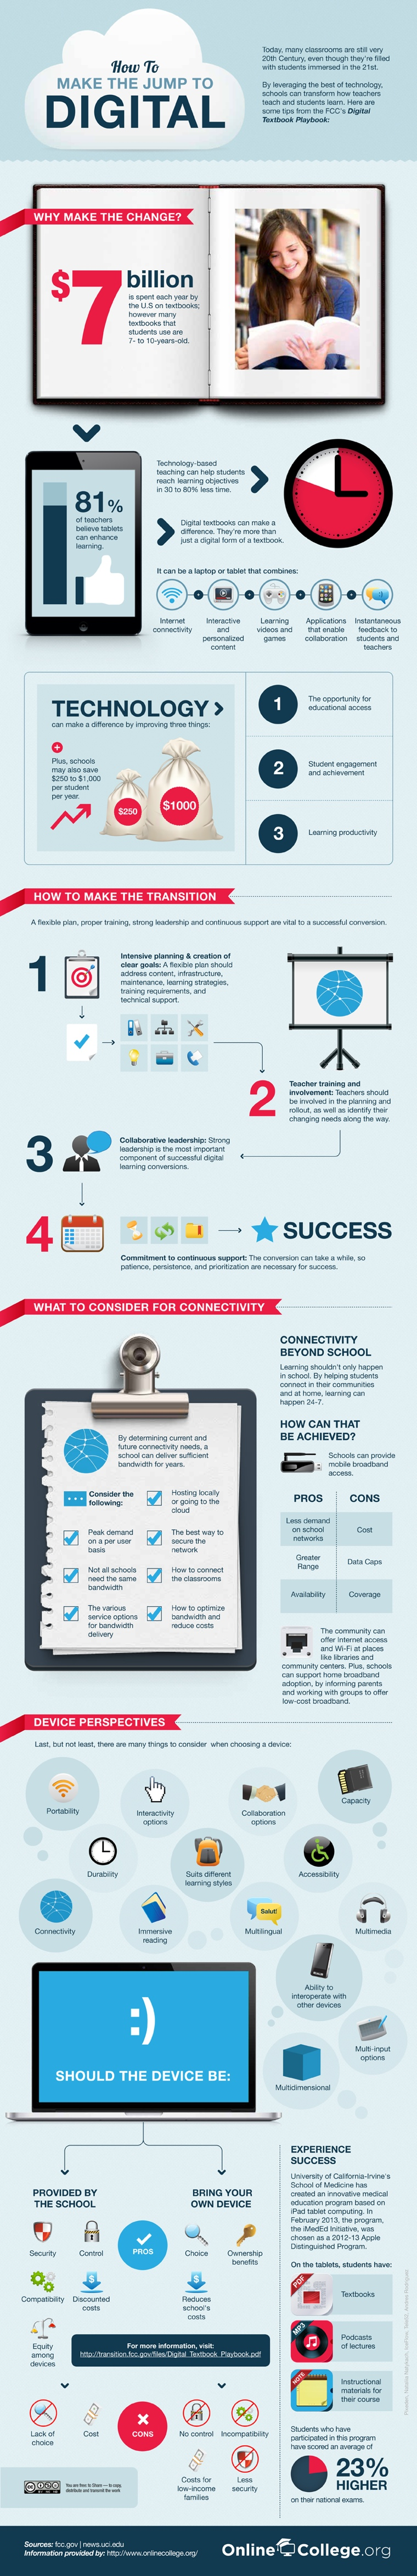 Digital Classroom Technology Infographic